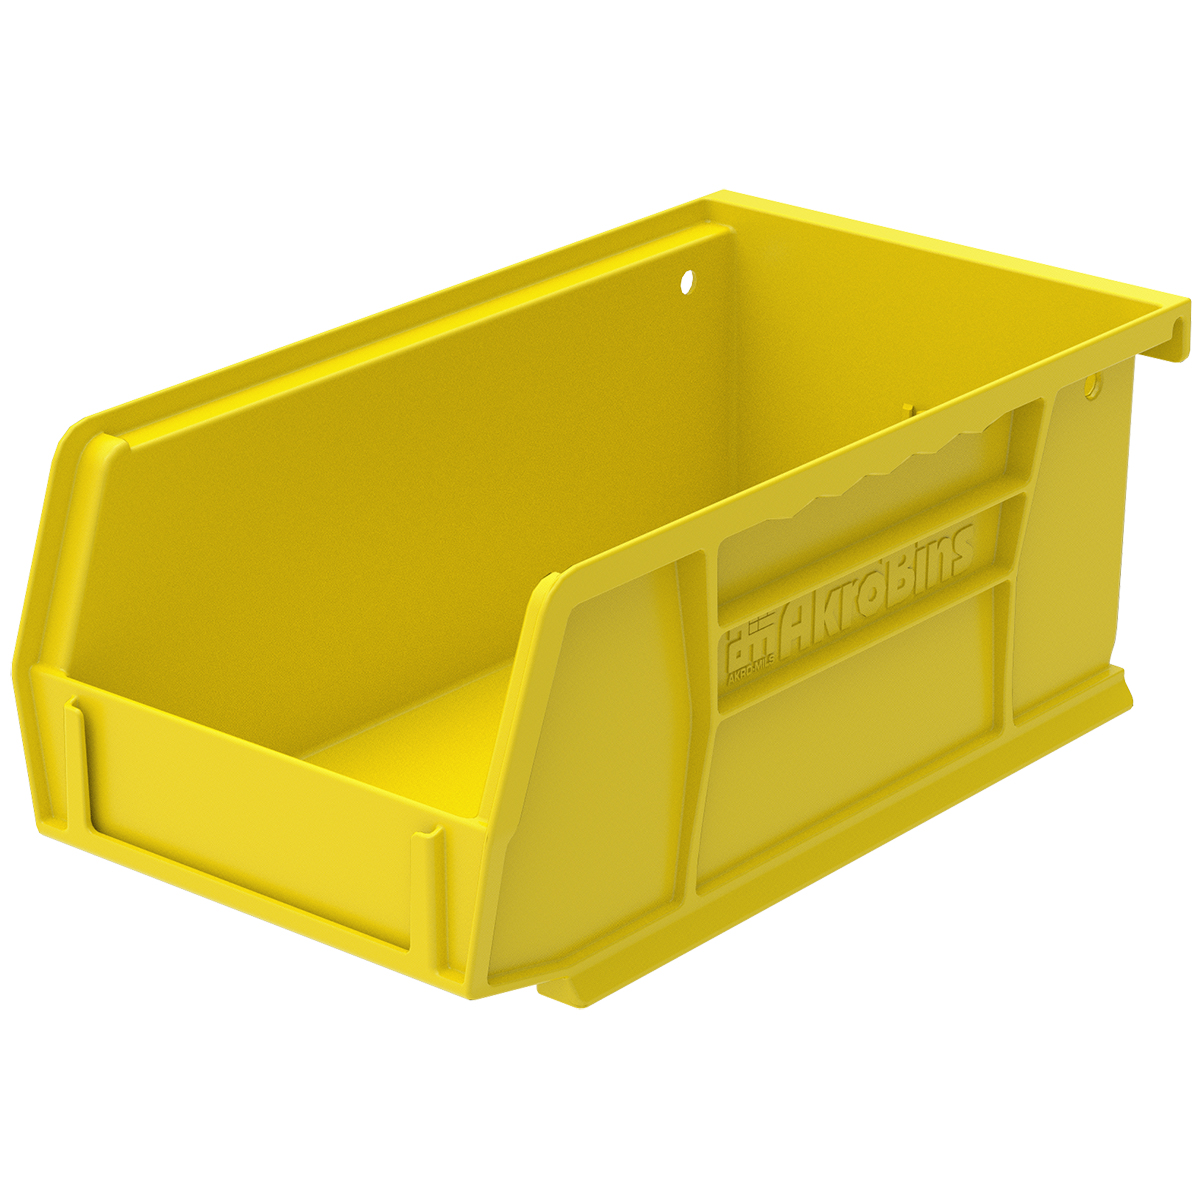 AkroBin 7-3/8 x 4-1/8 x 3, Yellow (30220YELLO).  This item sold in carton quantities of 24.